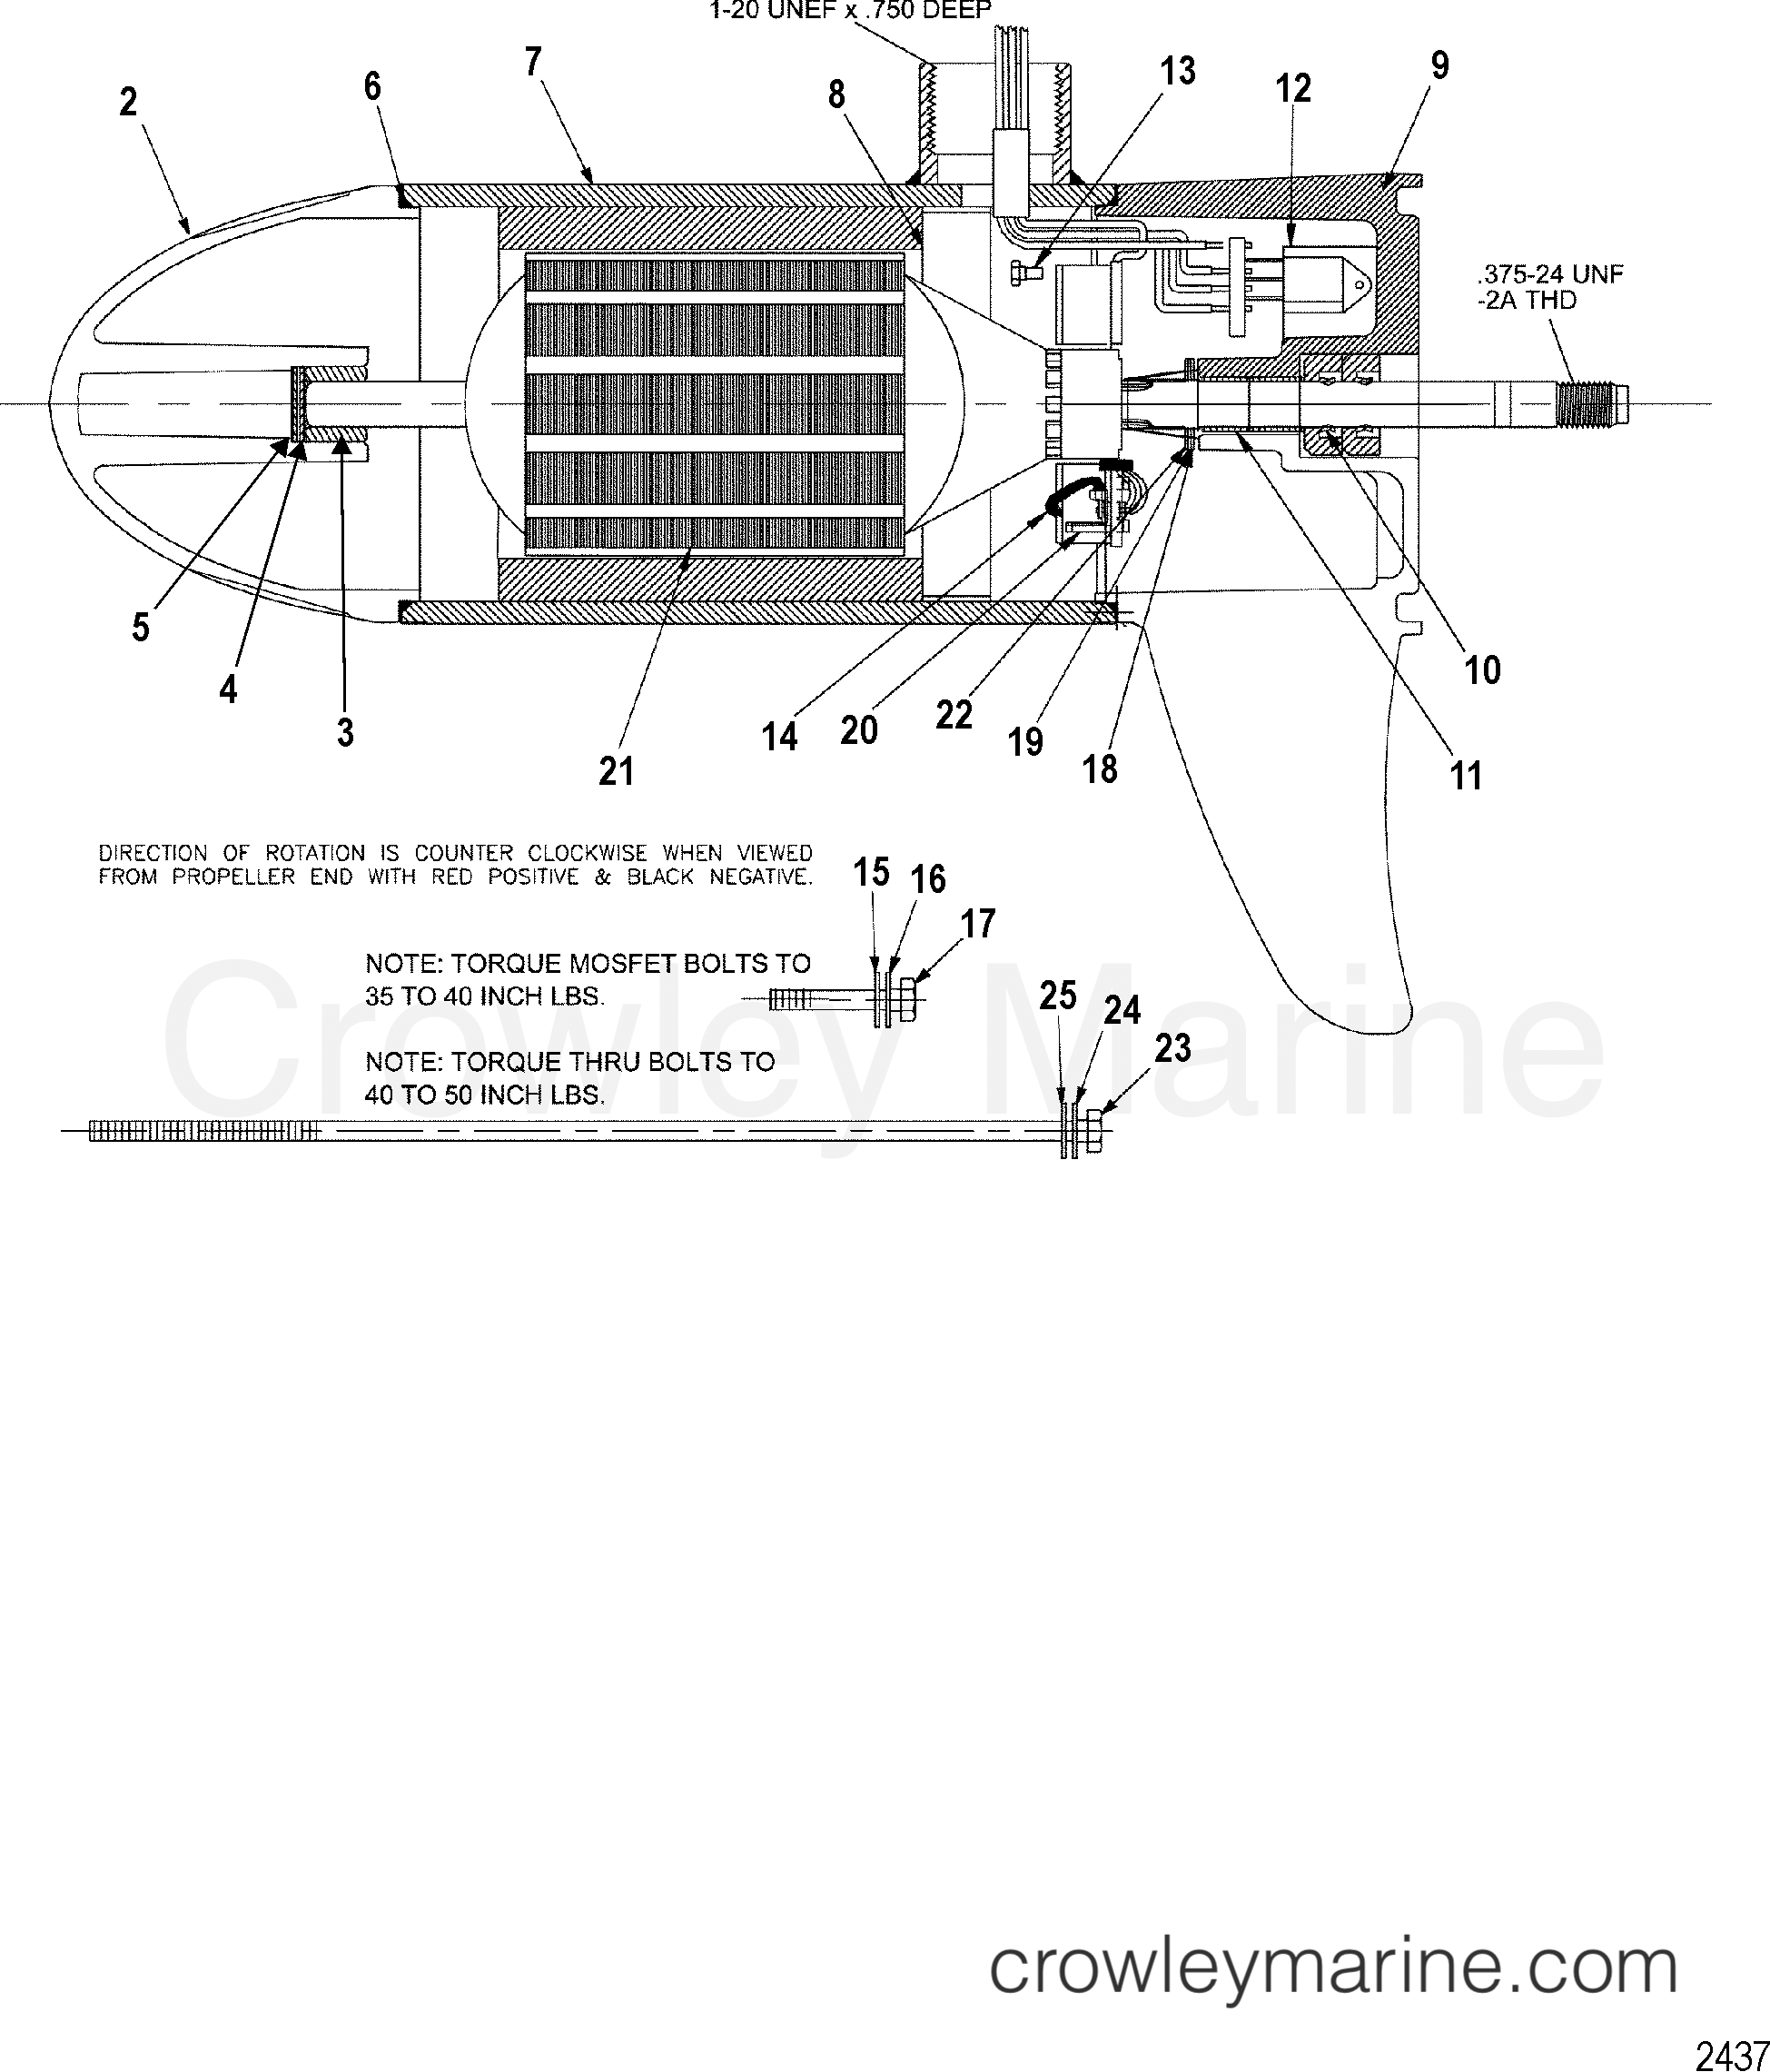 1999 MotorGuide 12V [MOTORGUIDE] - 9ET45B1VU - LOWER UNIT ASSEMBLY(50# - VARIABLE) (MTM397032) section